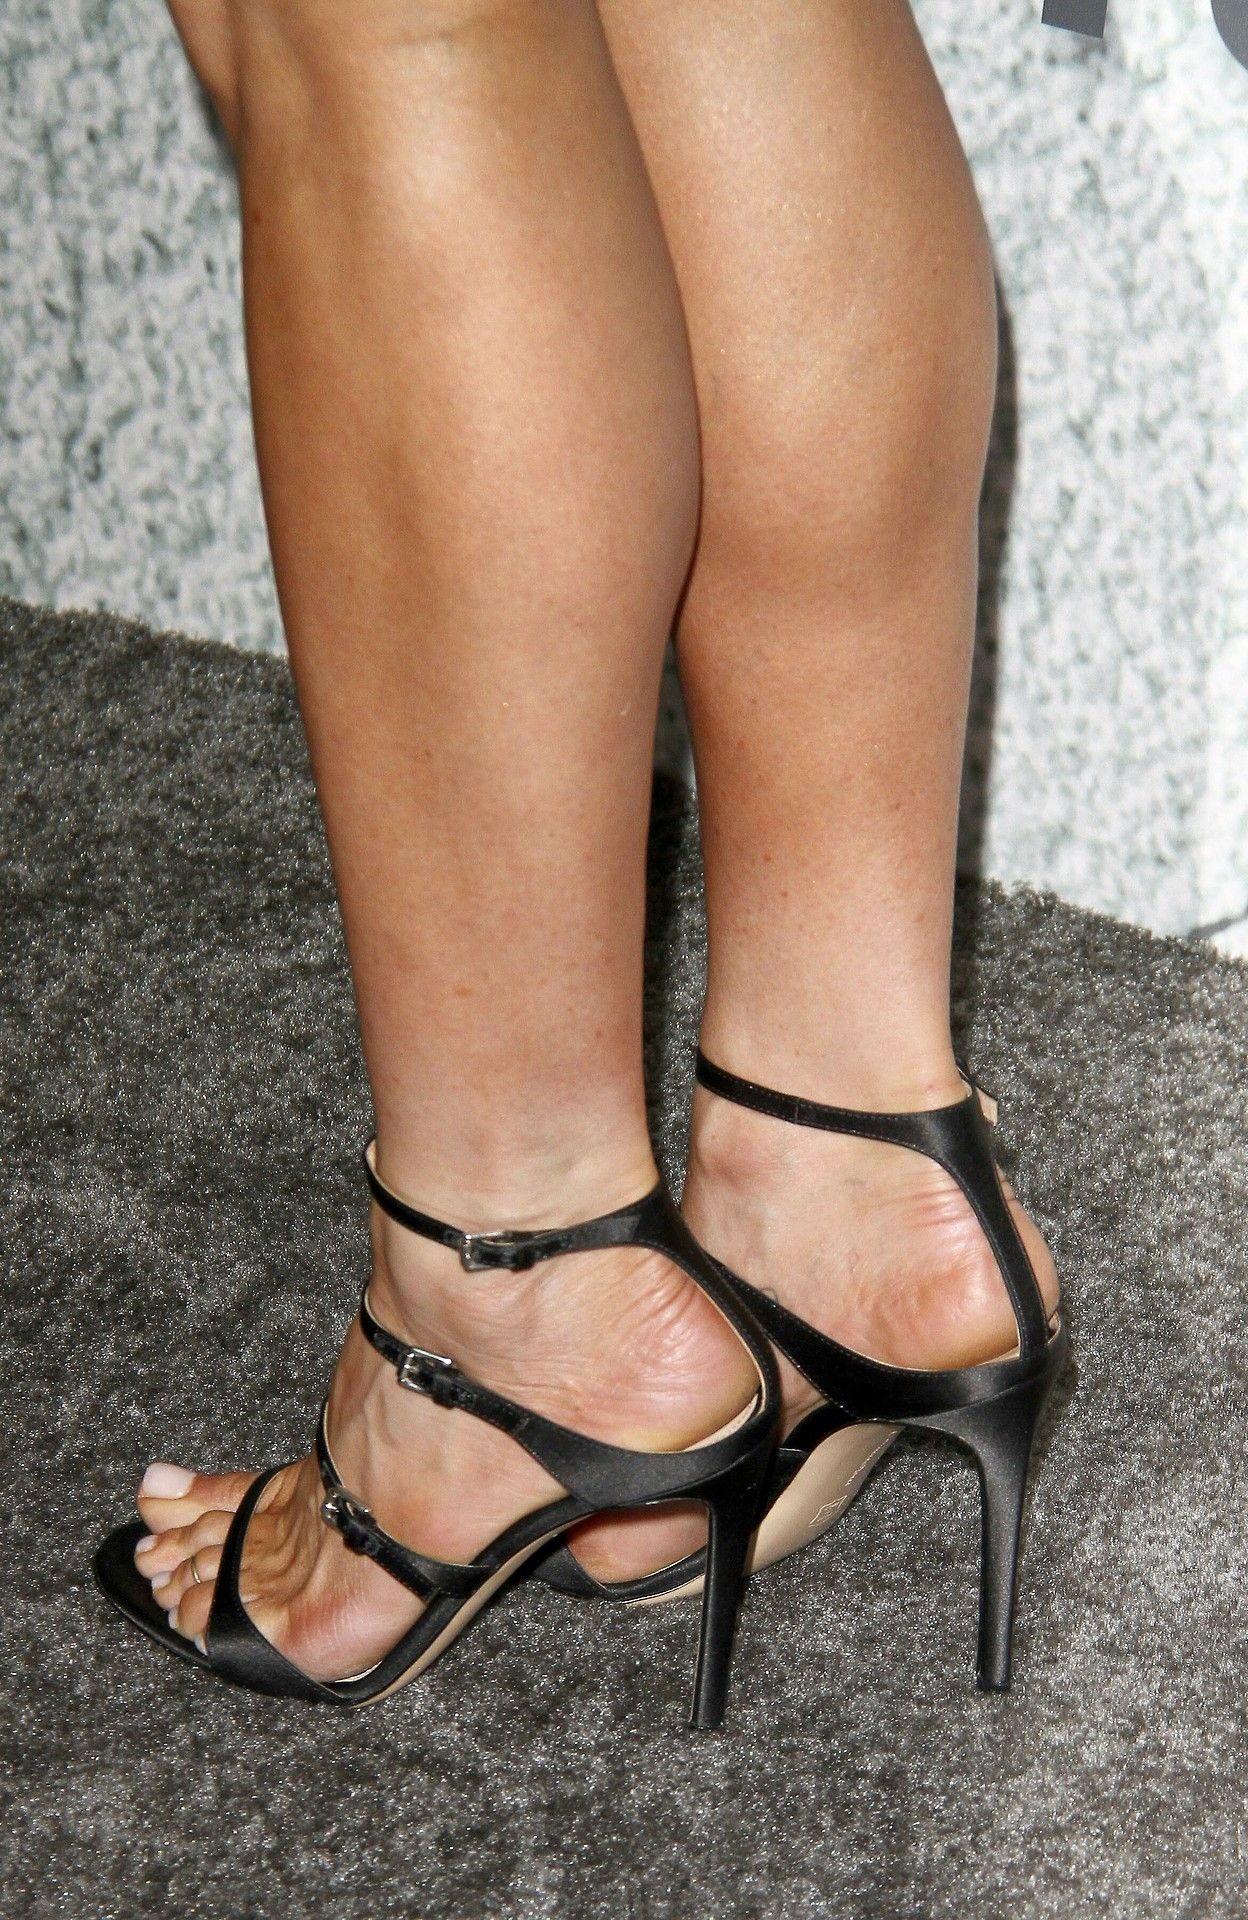 Sexy girl feet in sandals